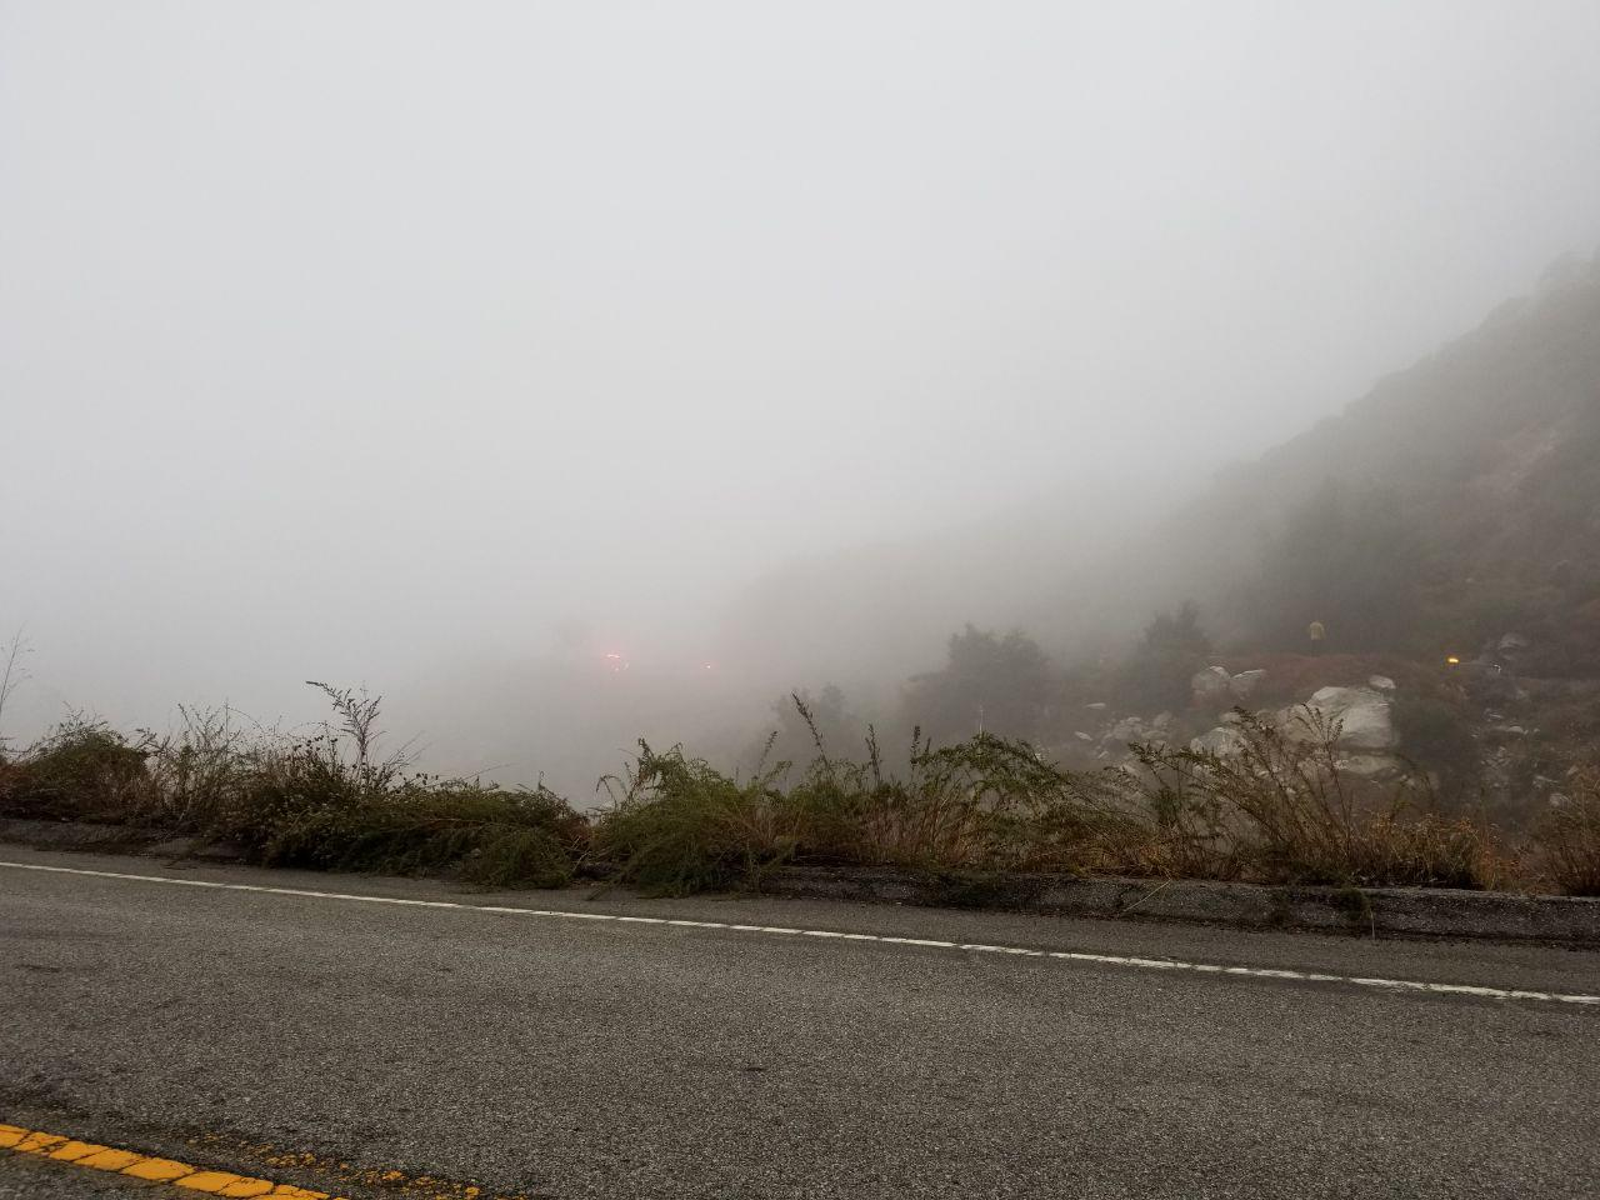 Flashing lights across the ravine on the other side of a corner. Lots of mist and rain on and off all day. The first rain will make the road greasy even on roads like this one that aren't traveled as much.